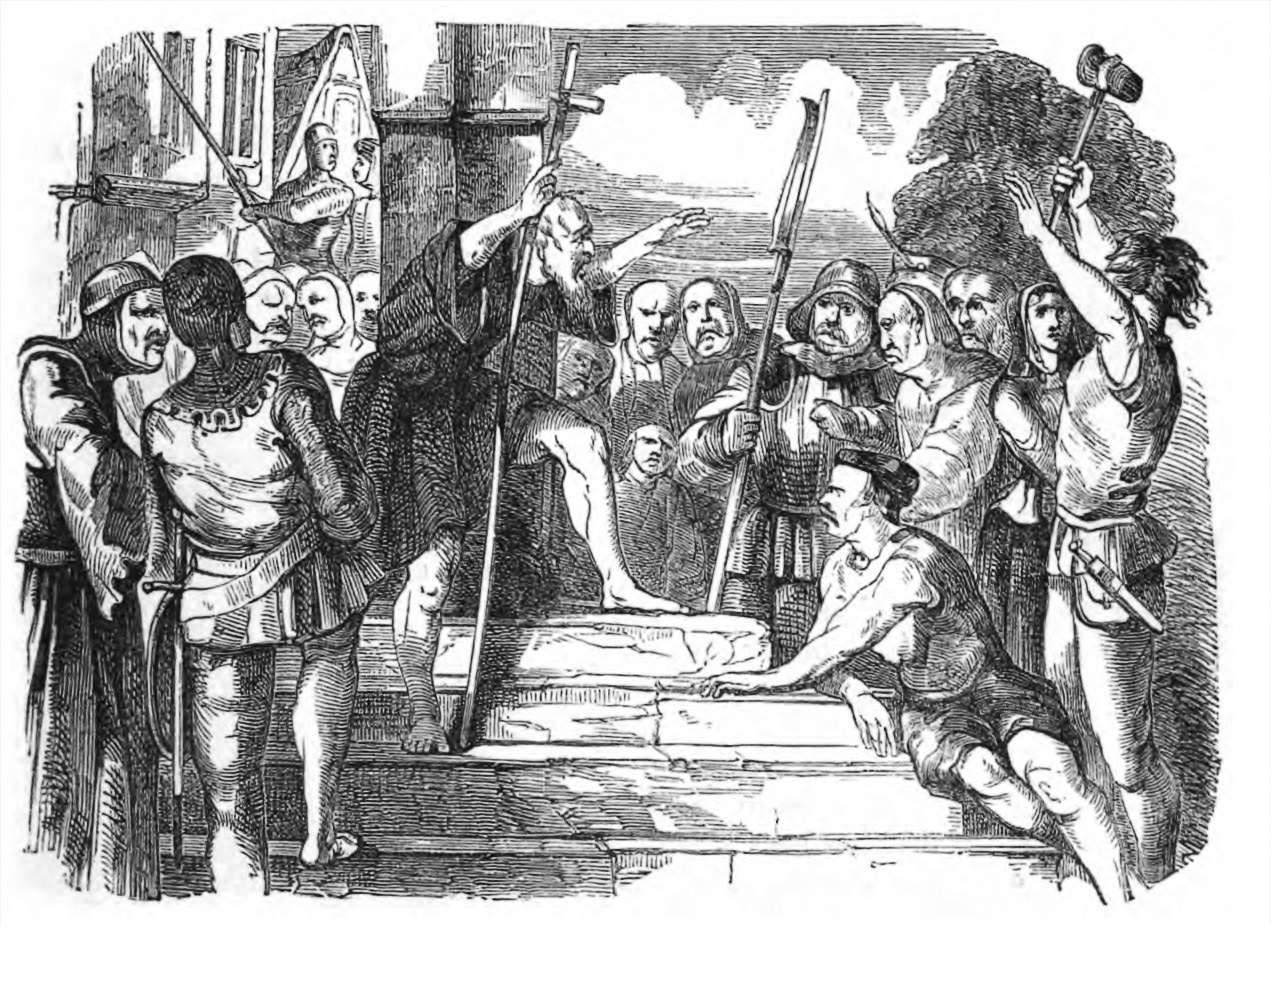 Illustration showing Peter preaching to Crusaders